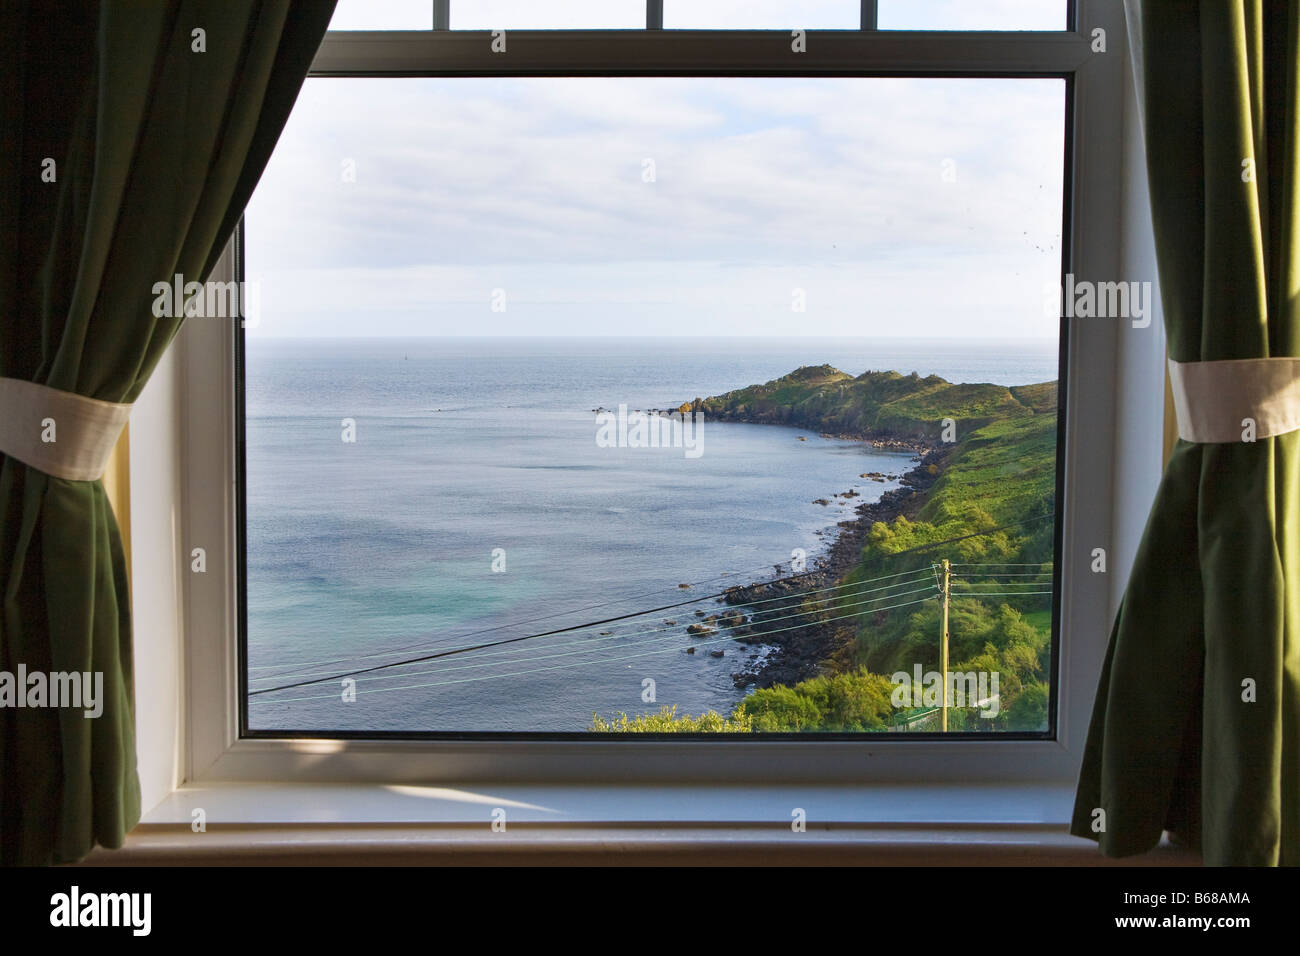 View from a window of the peninsula at Coverack on the coast of Cornwall, England Stock Photo